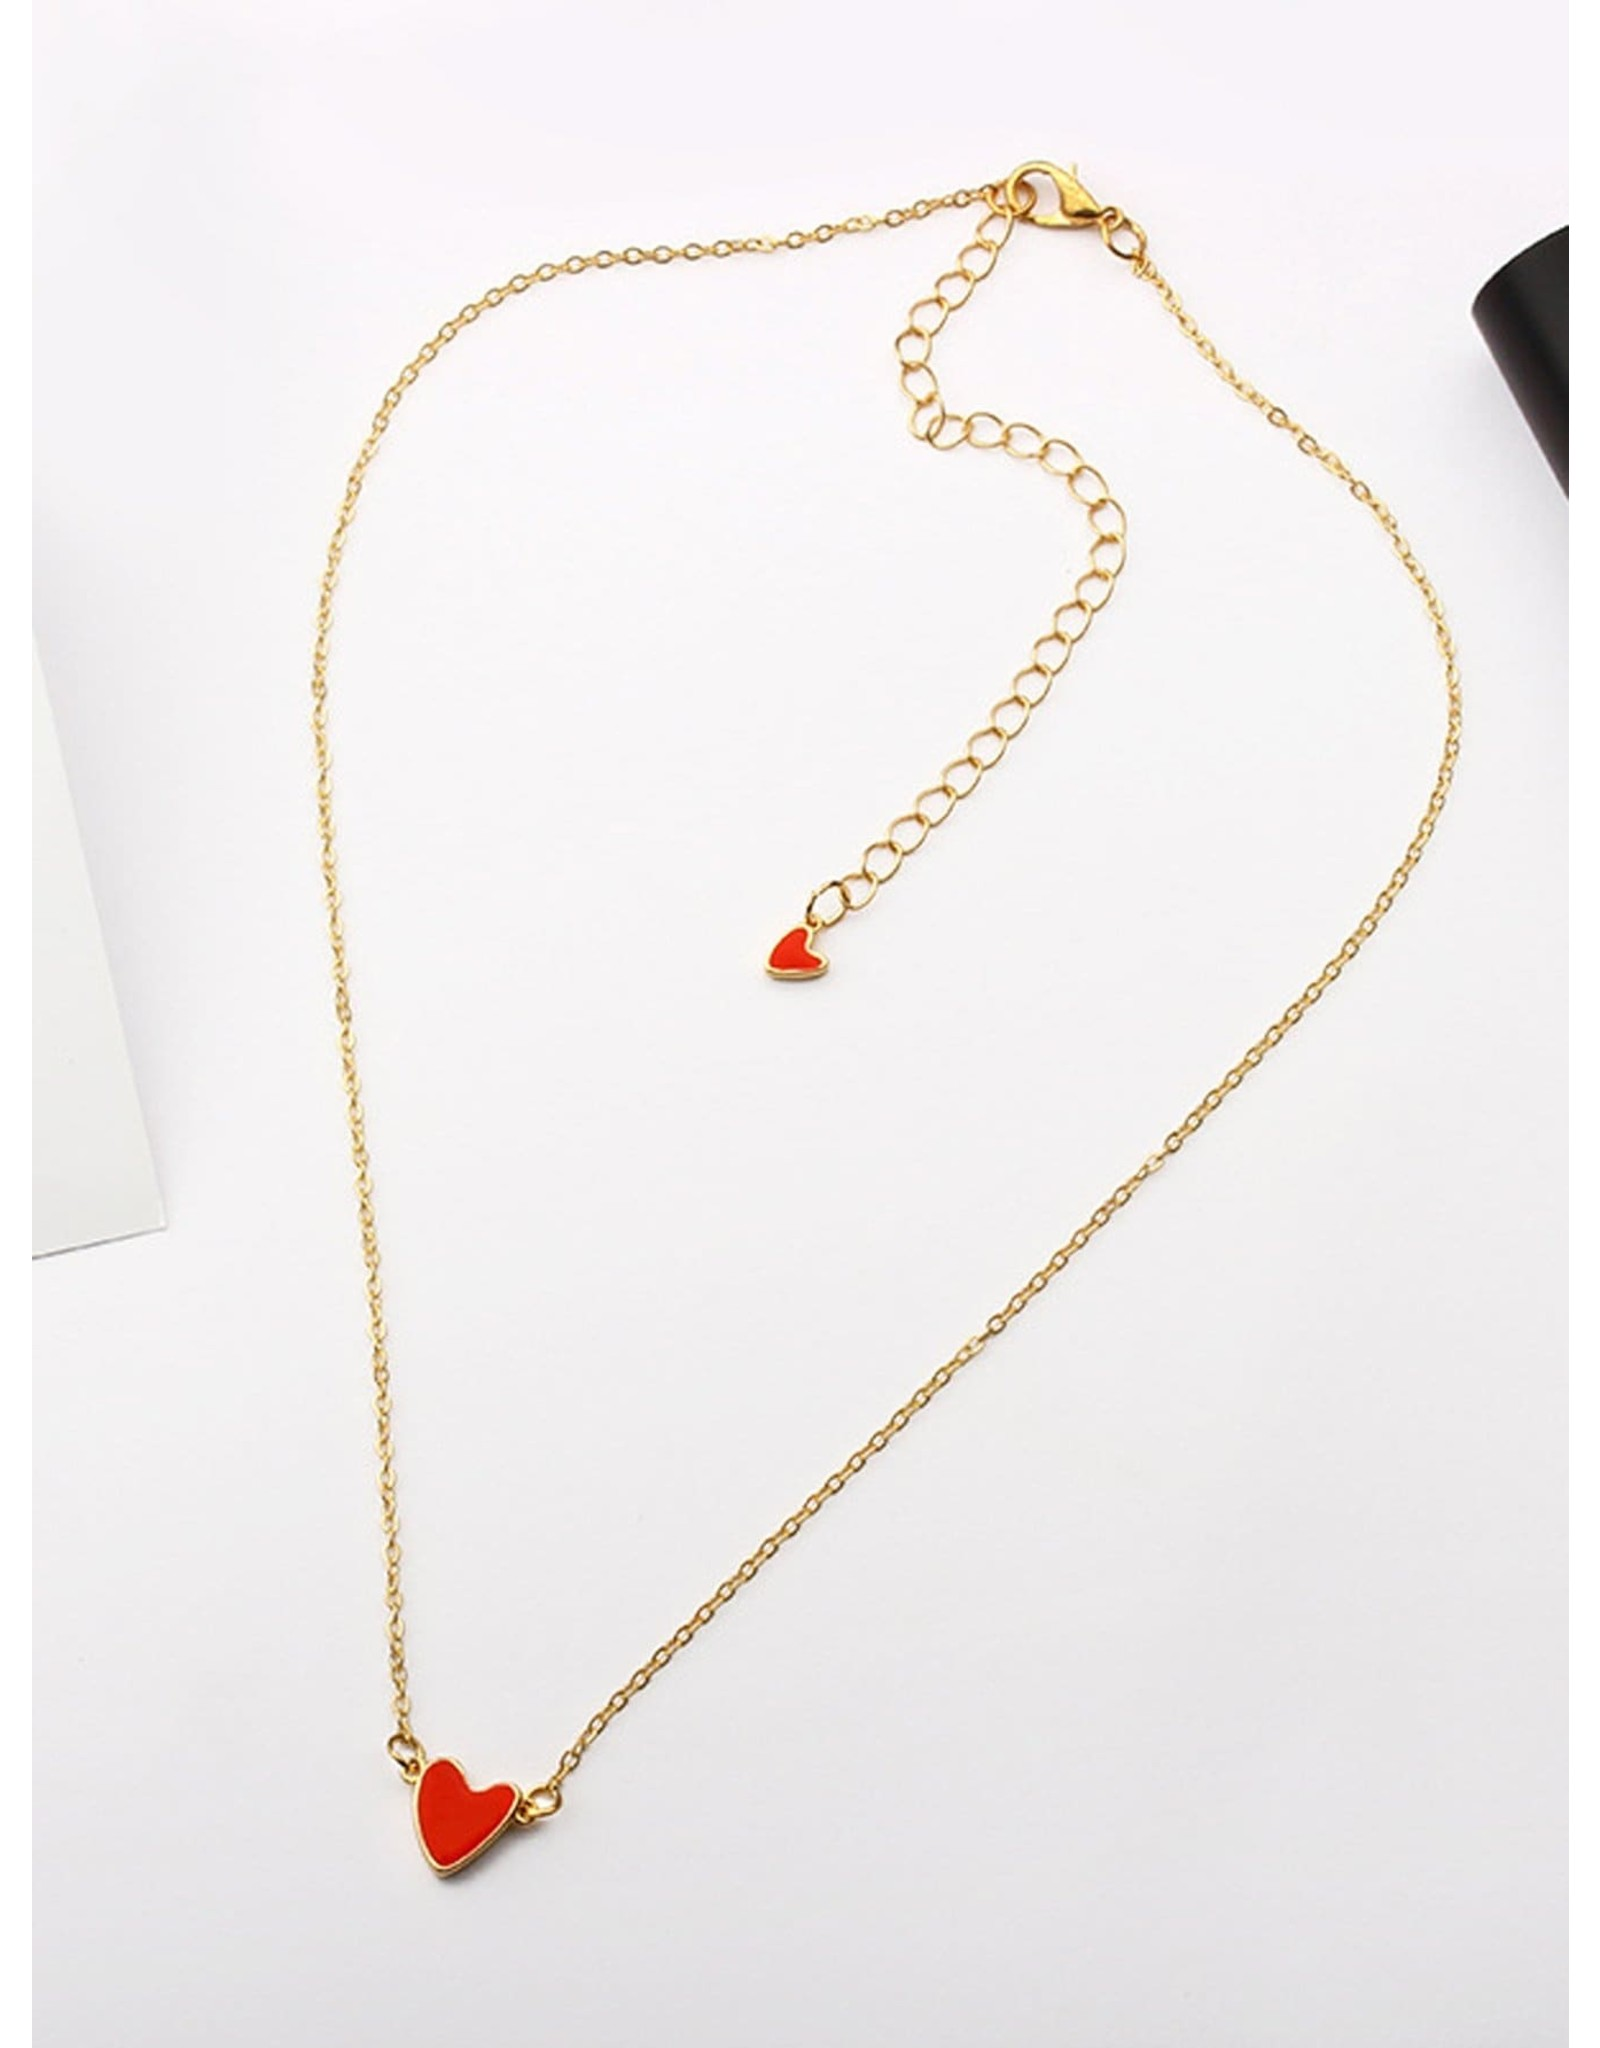 Shein Necklace - Tiny Red Heart